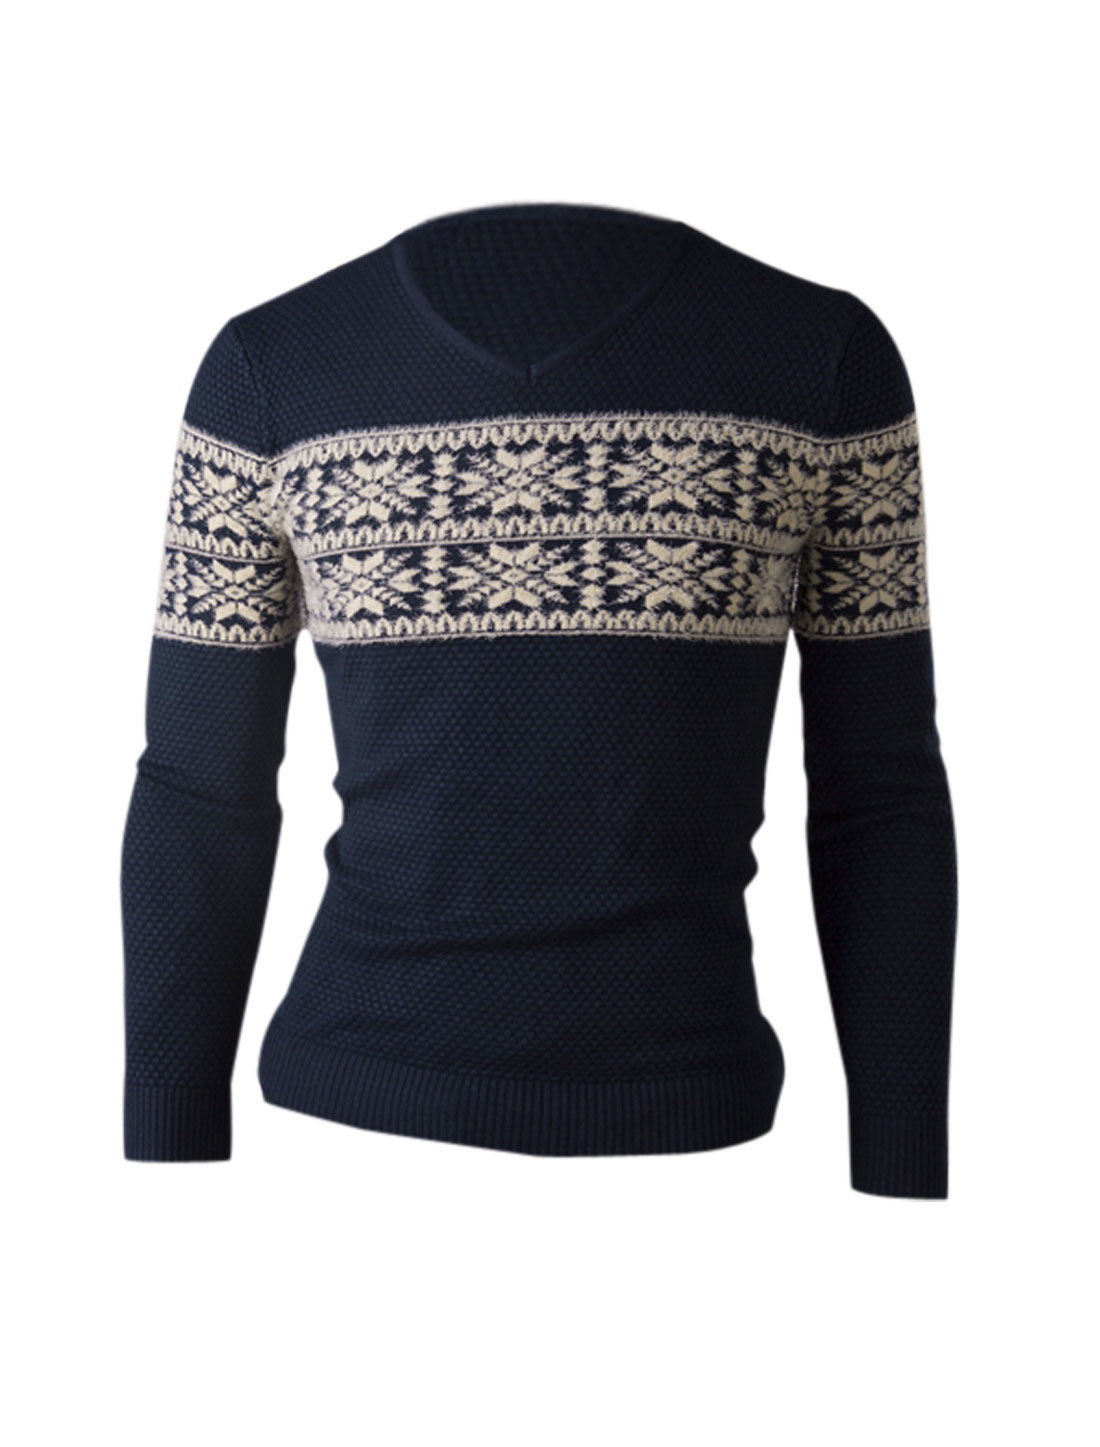 Men Contrast Color Snowflake Pattern Fleece Detail Casual Sweater Navy Blue S